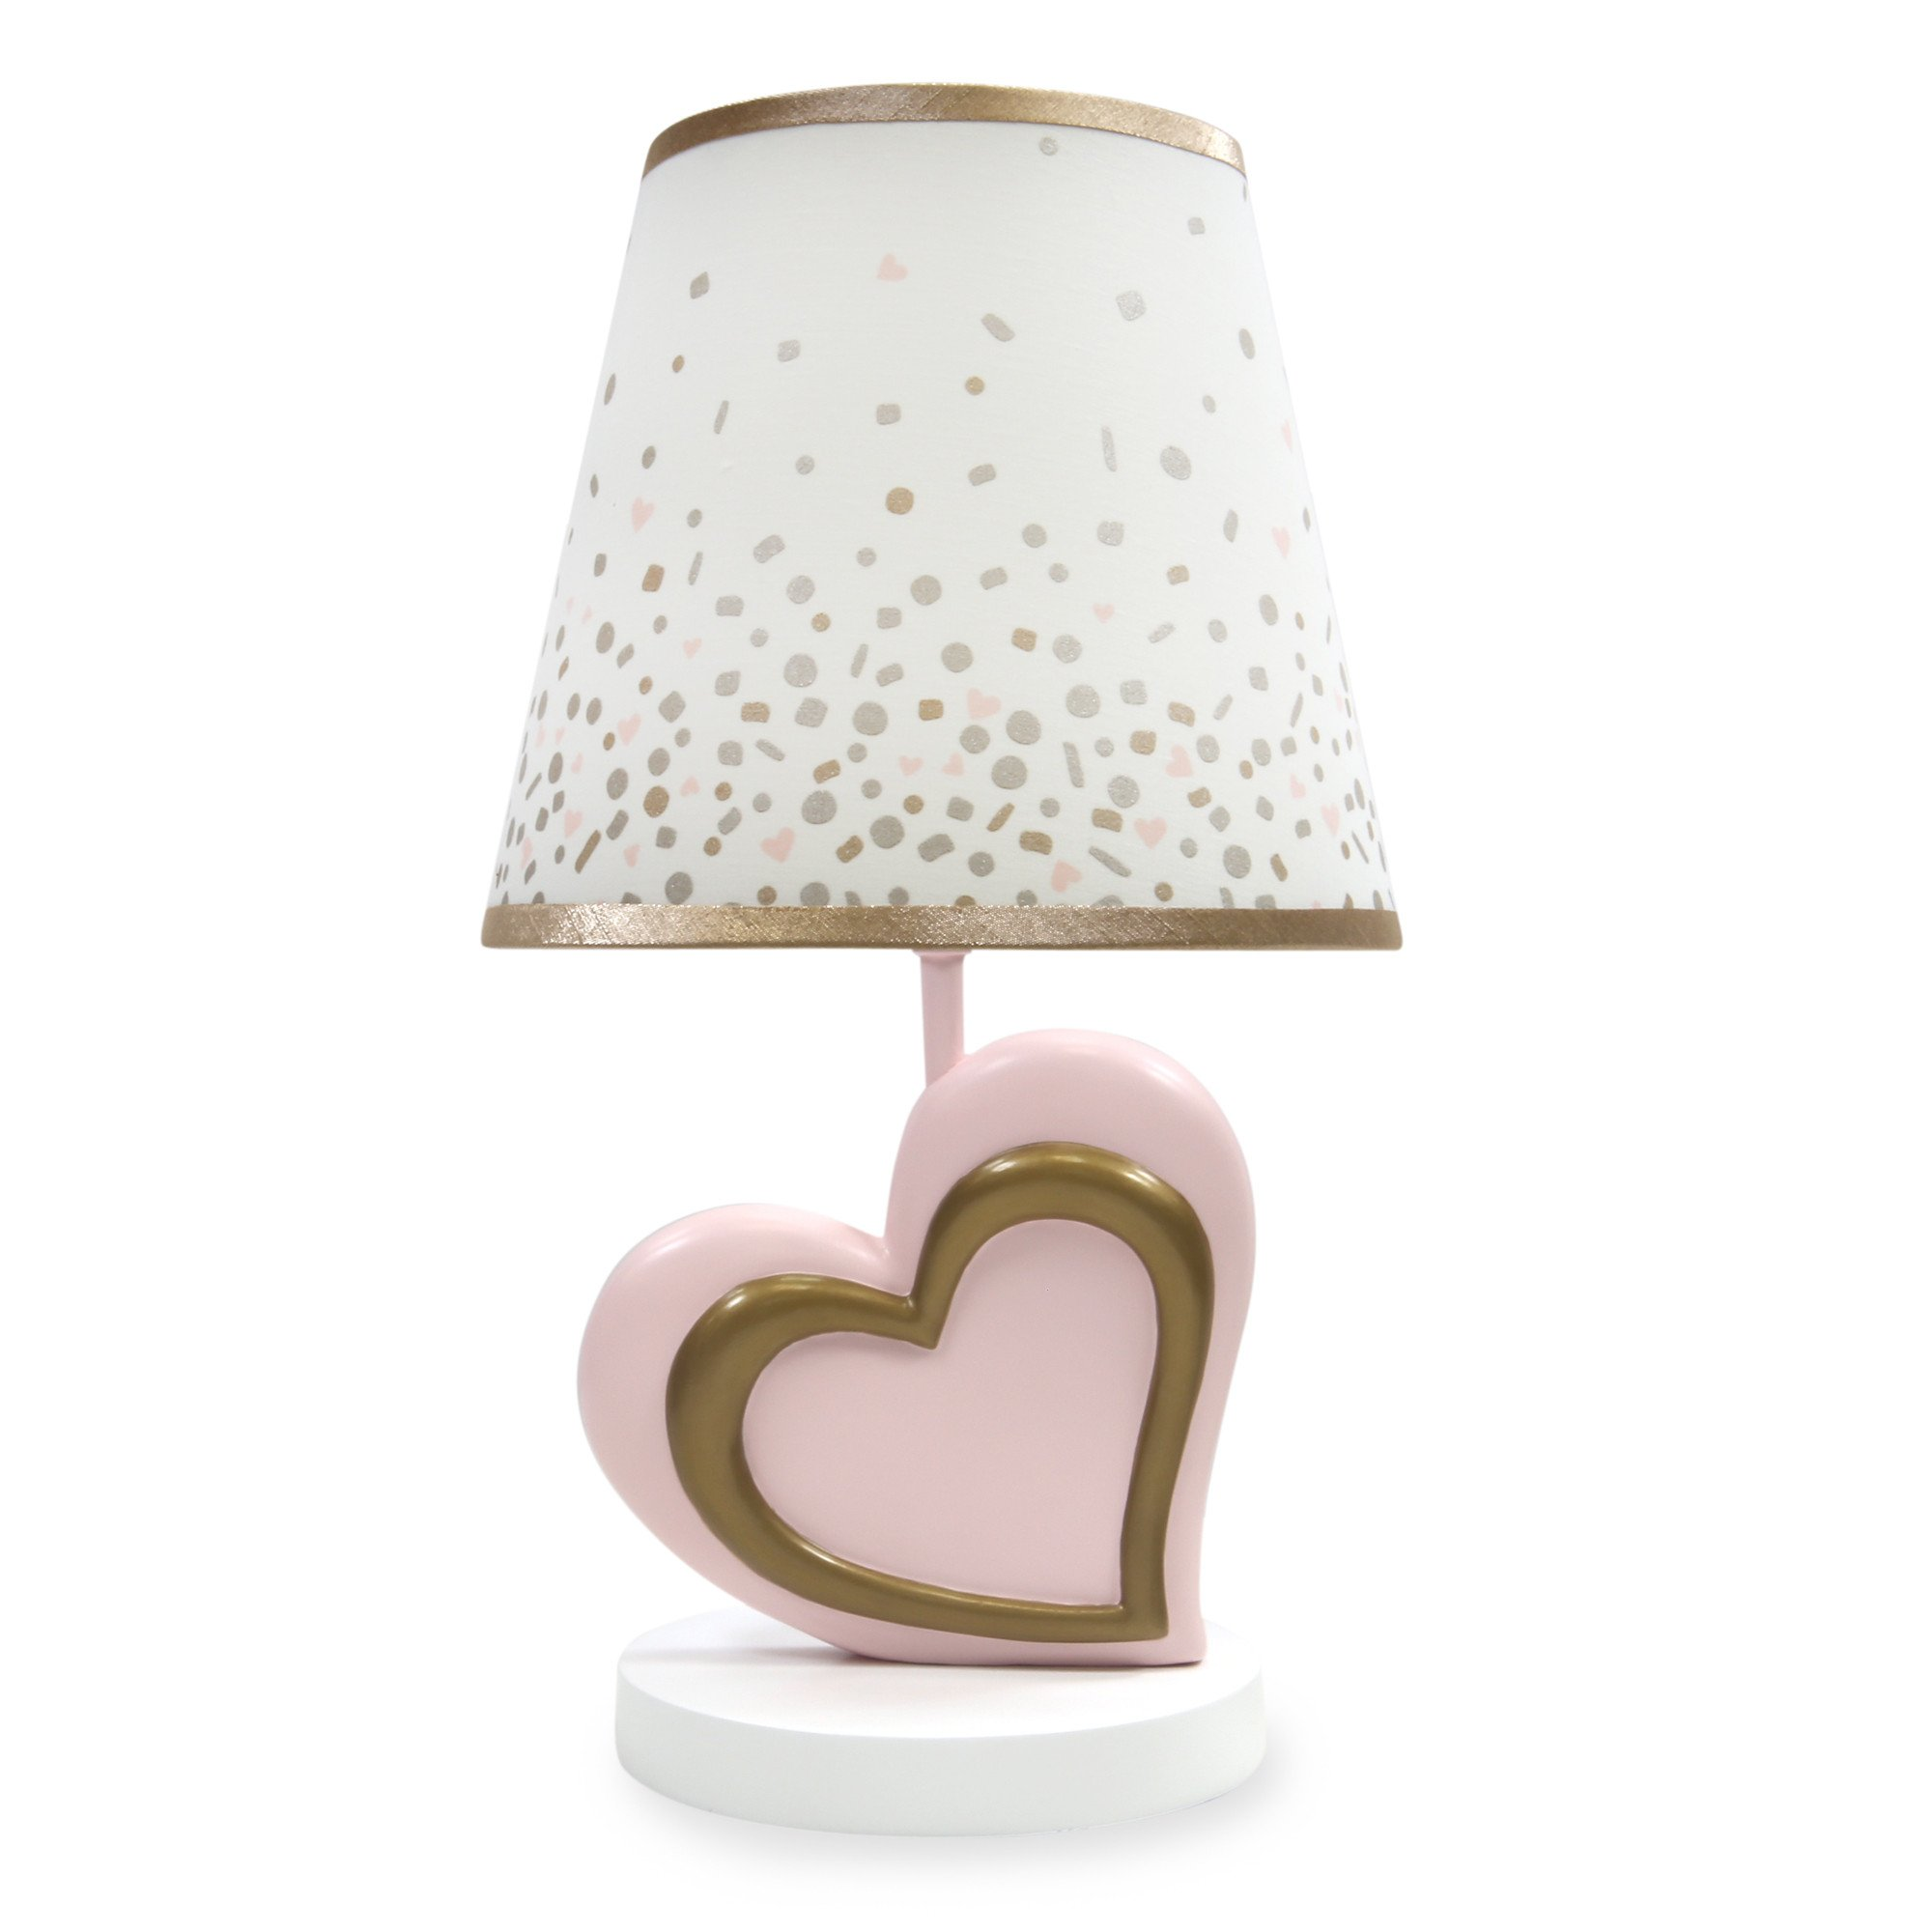 Lambs & Ivy Pink & Metallic Gold Heart Nursery Lamp with Shade & Bulb by Lambs & Ivy